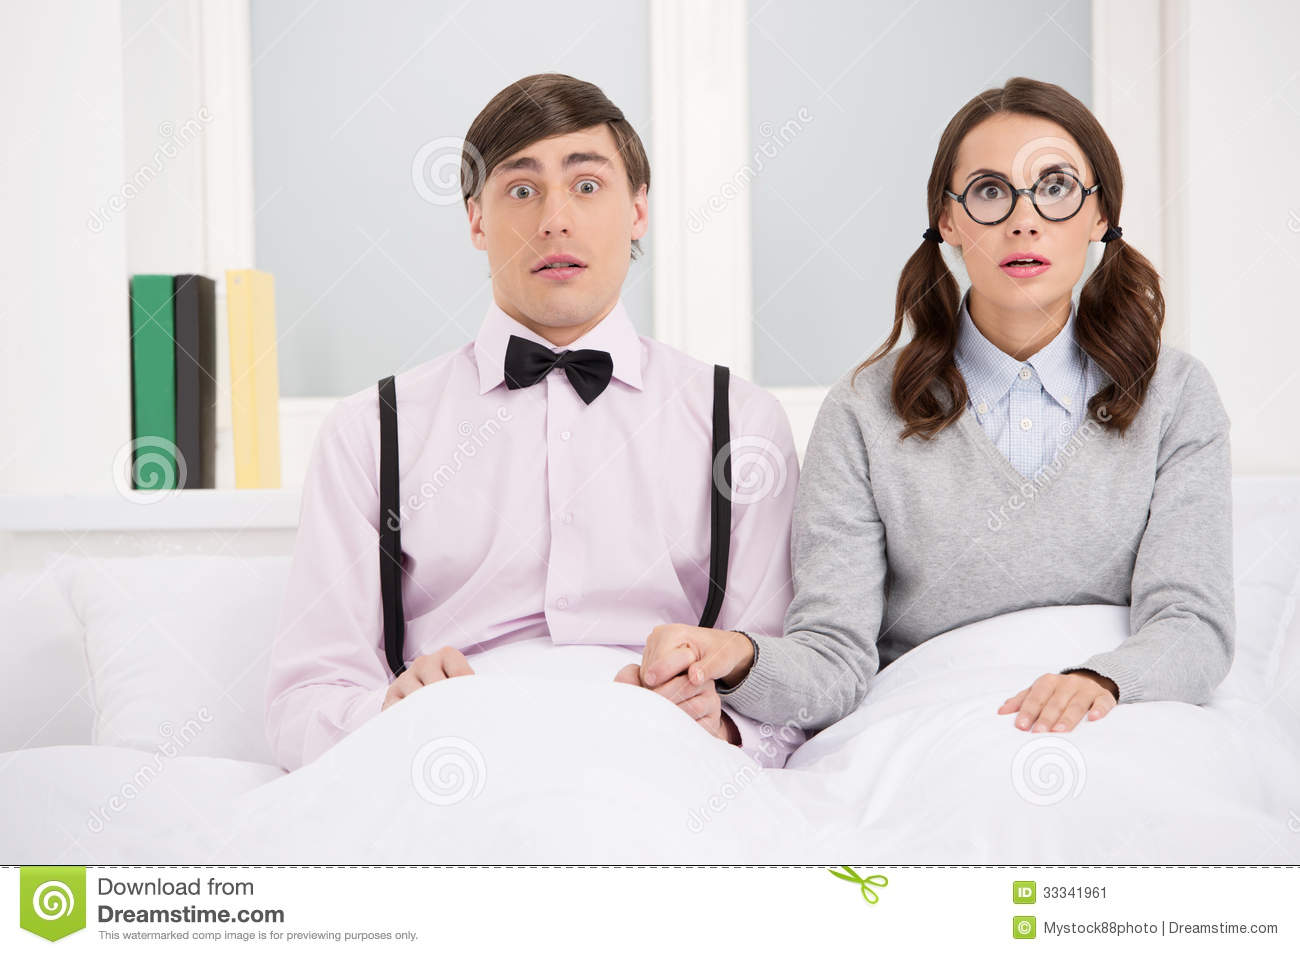 Nerd couple. Surprised nerd couple sitting on the bed and looking at camera